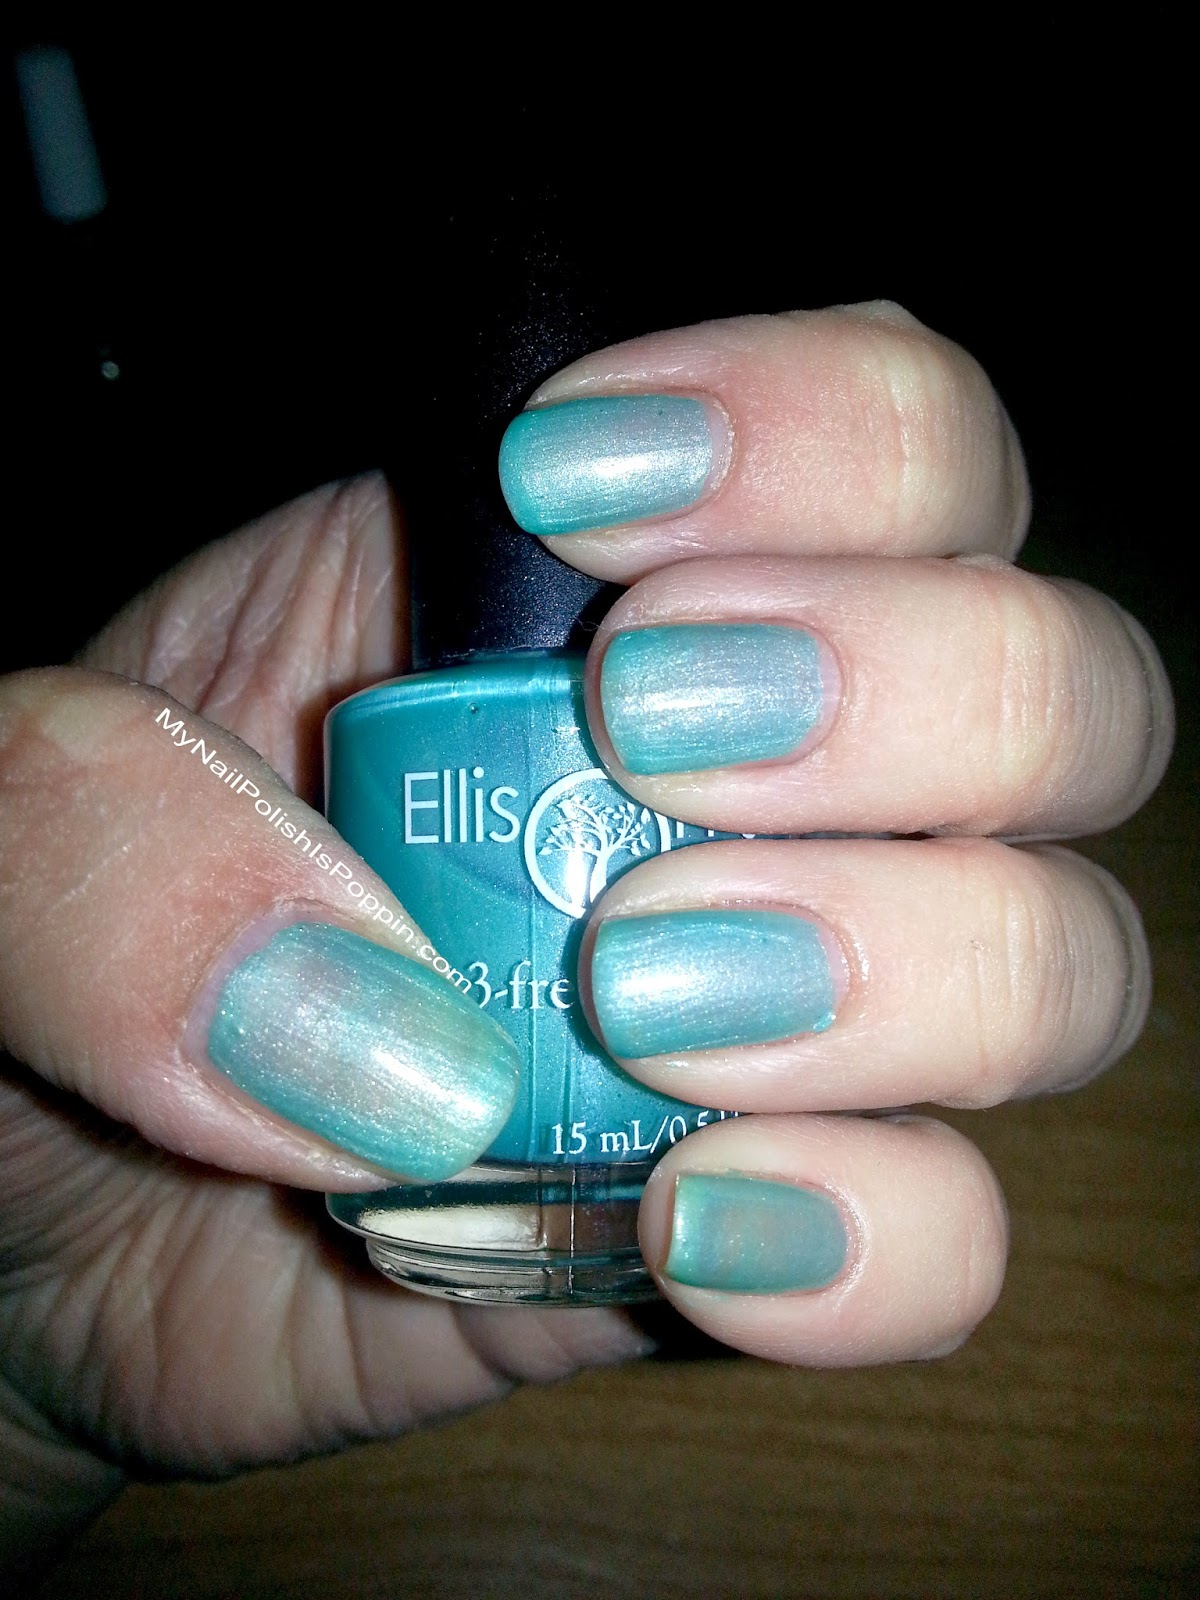 Ellison's Organics Harvey Girl